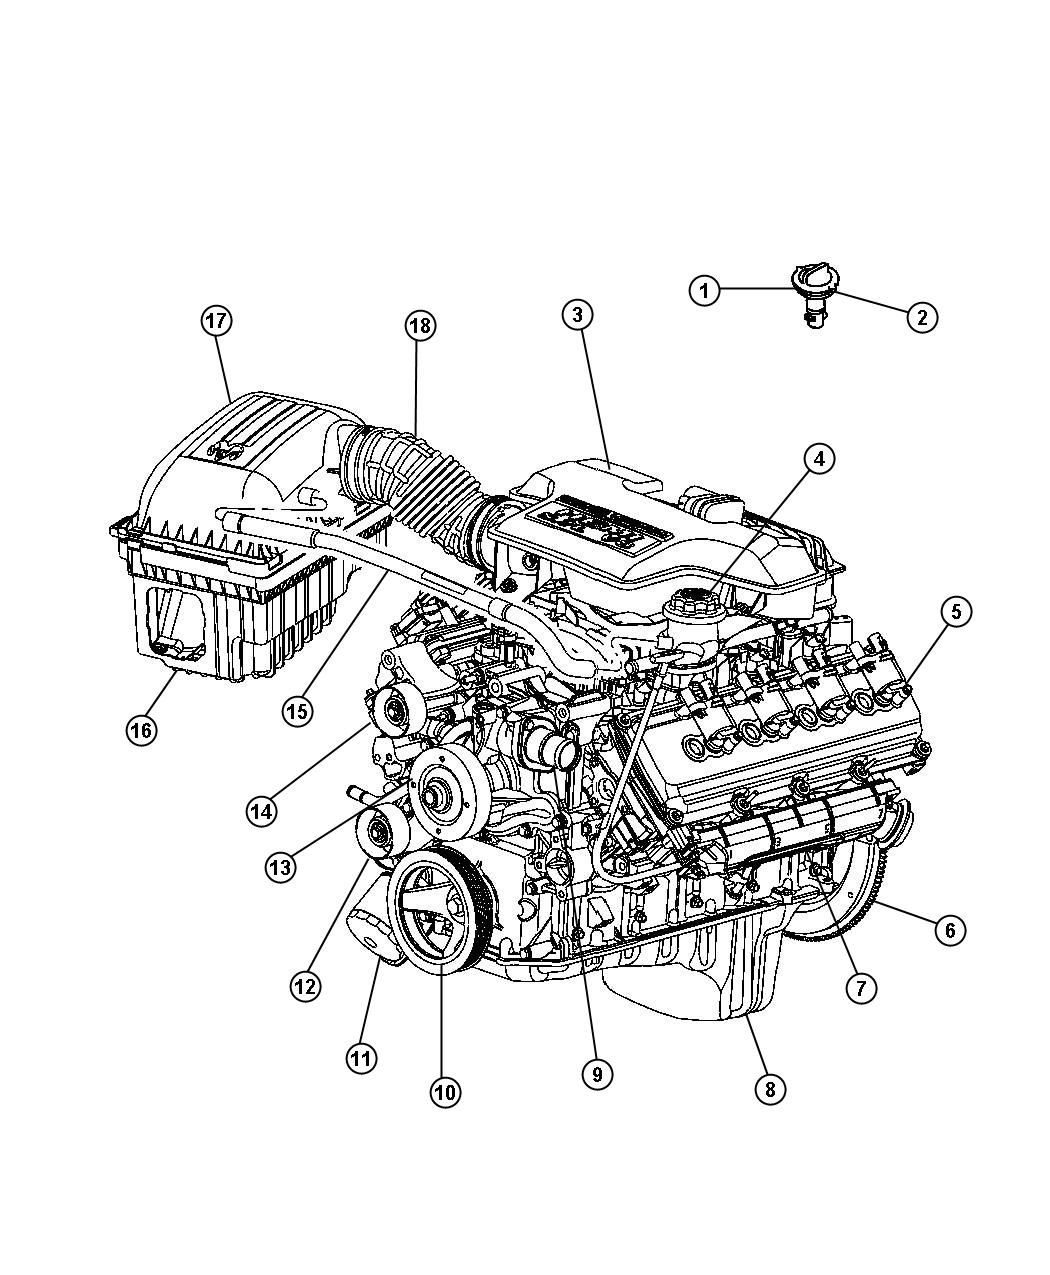 5 7 Dodge Engine Diagram - Wiring Diagramsscrew.psicologoafaenza.it